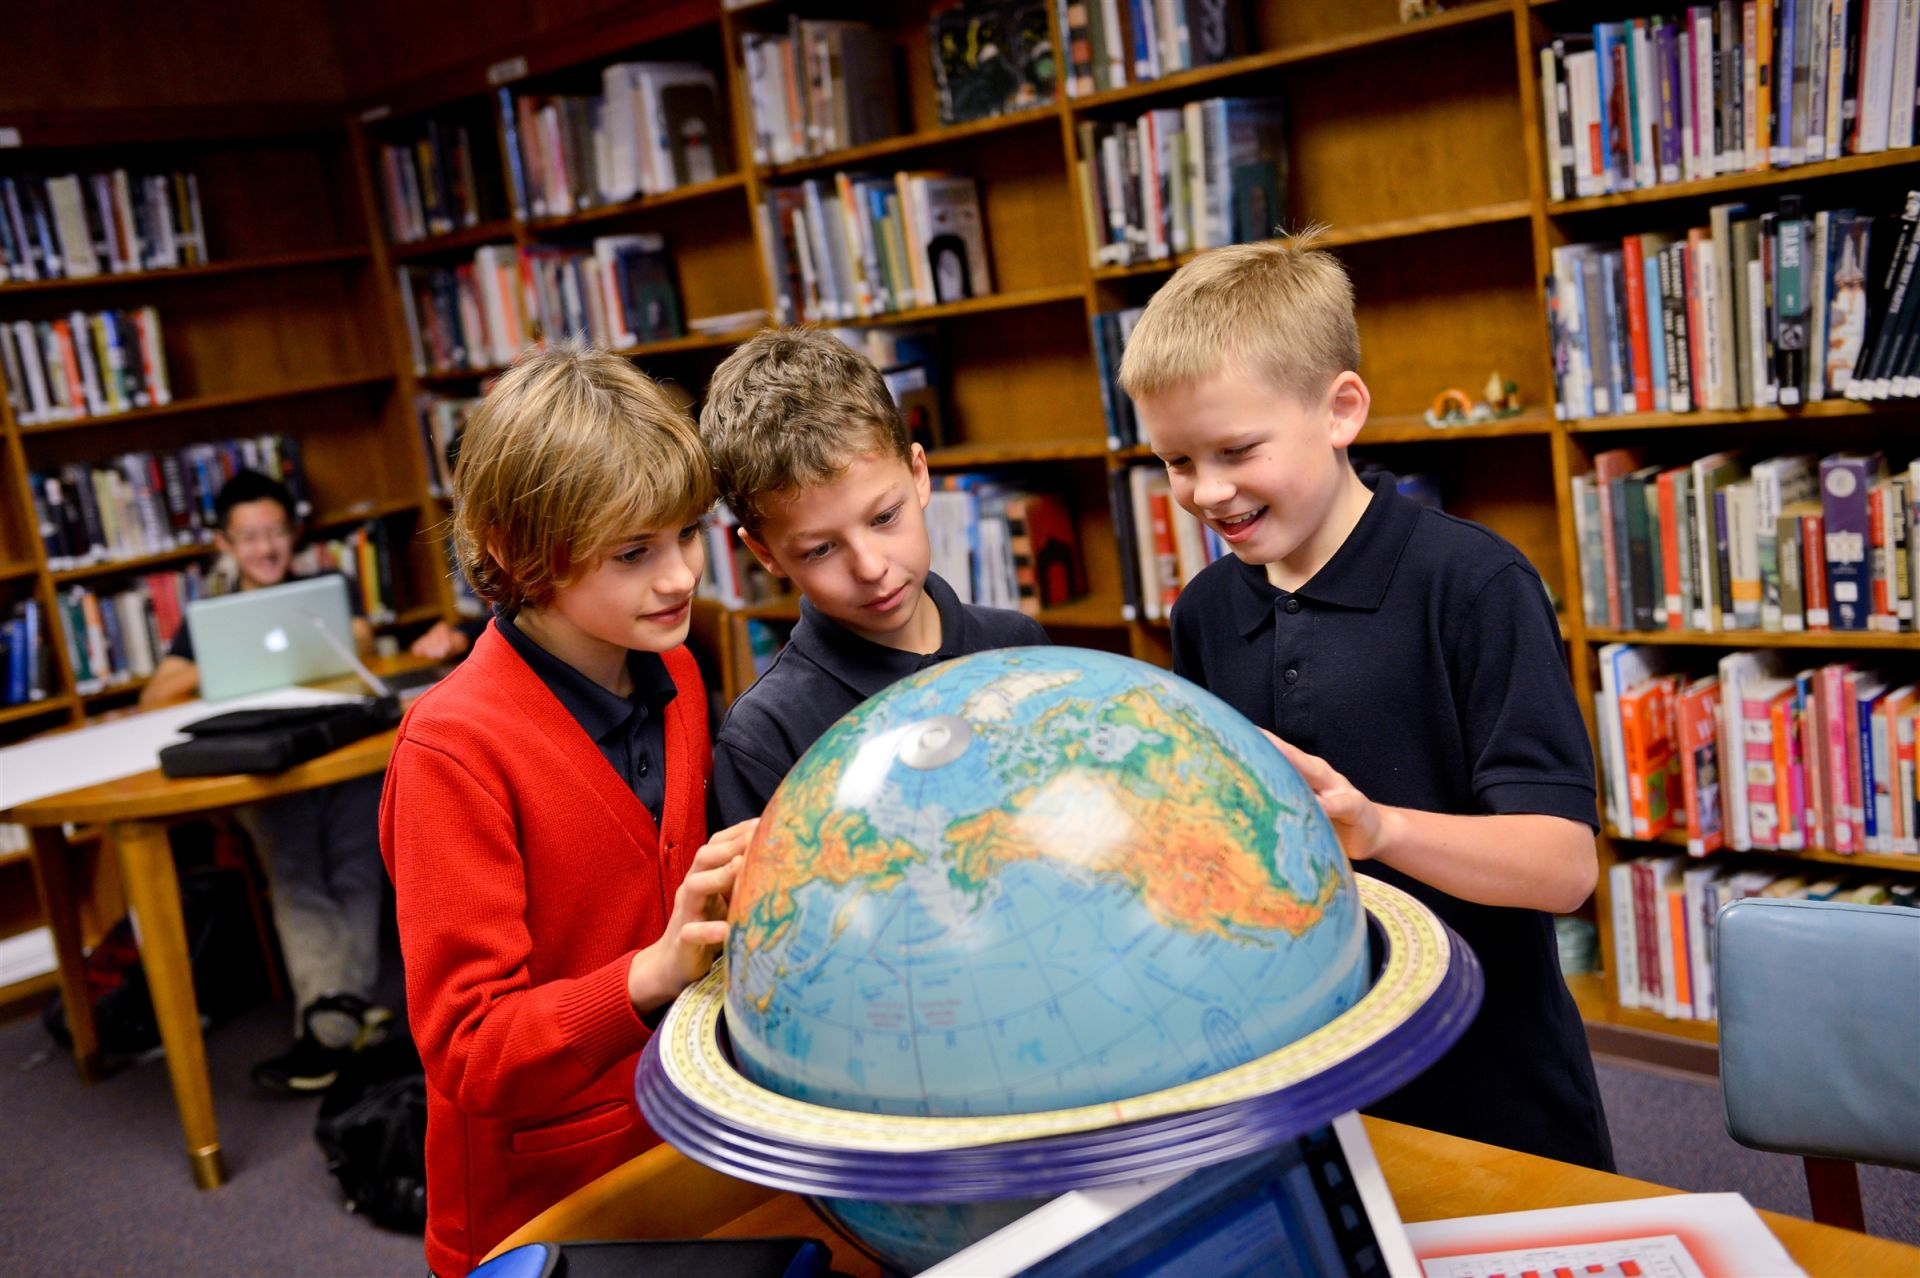 Grade Students 4 with globe